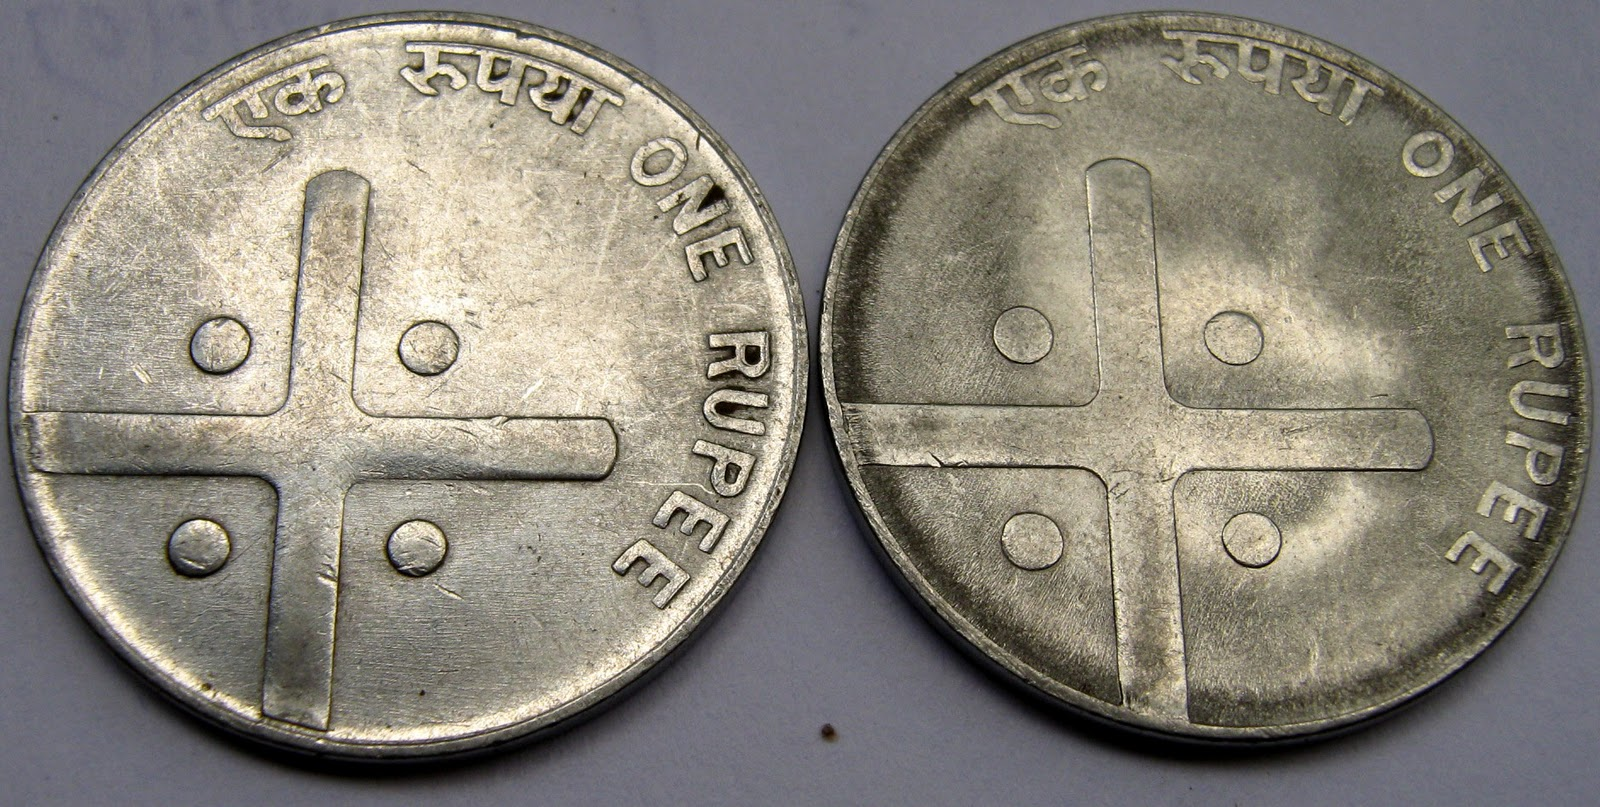 Beekar The Numismatist Regular Cross Coins Issued In India